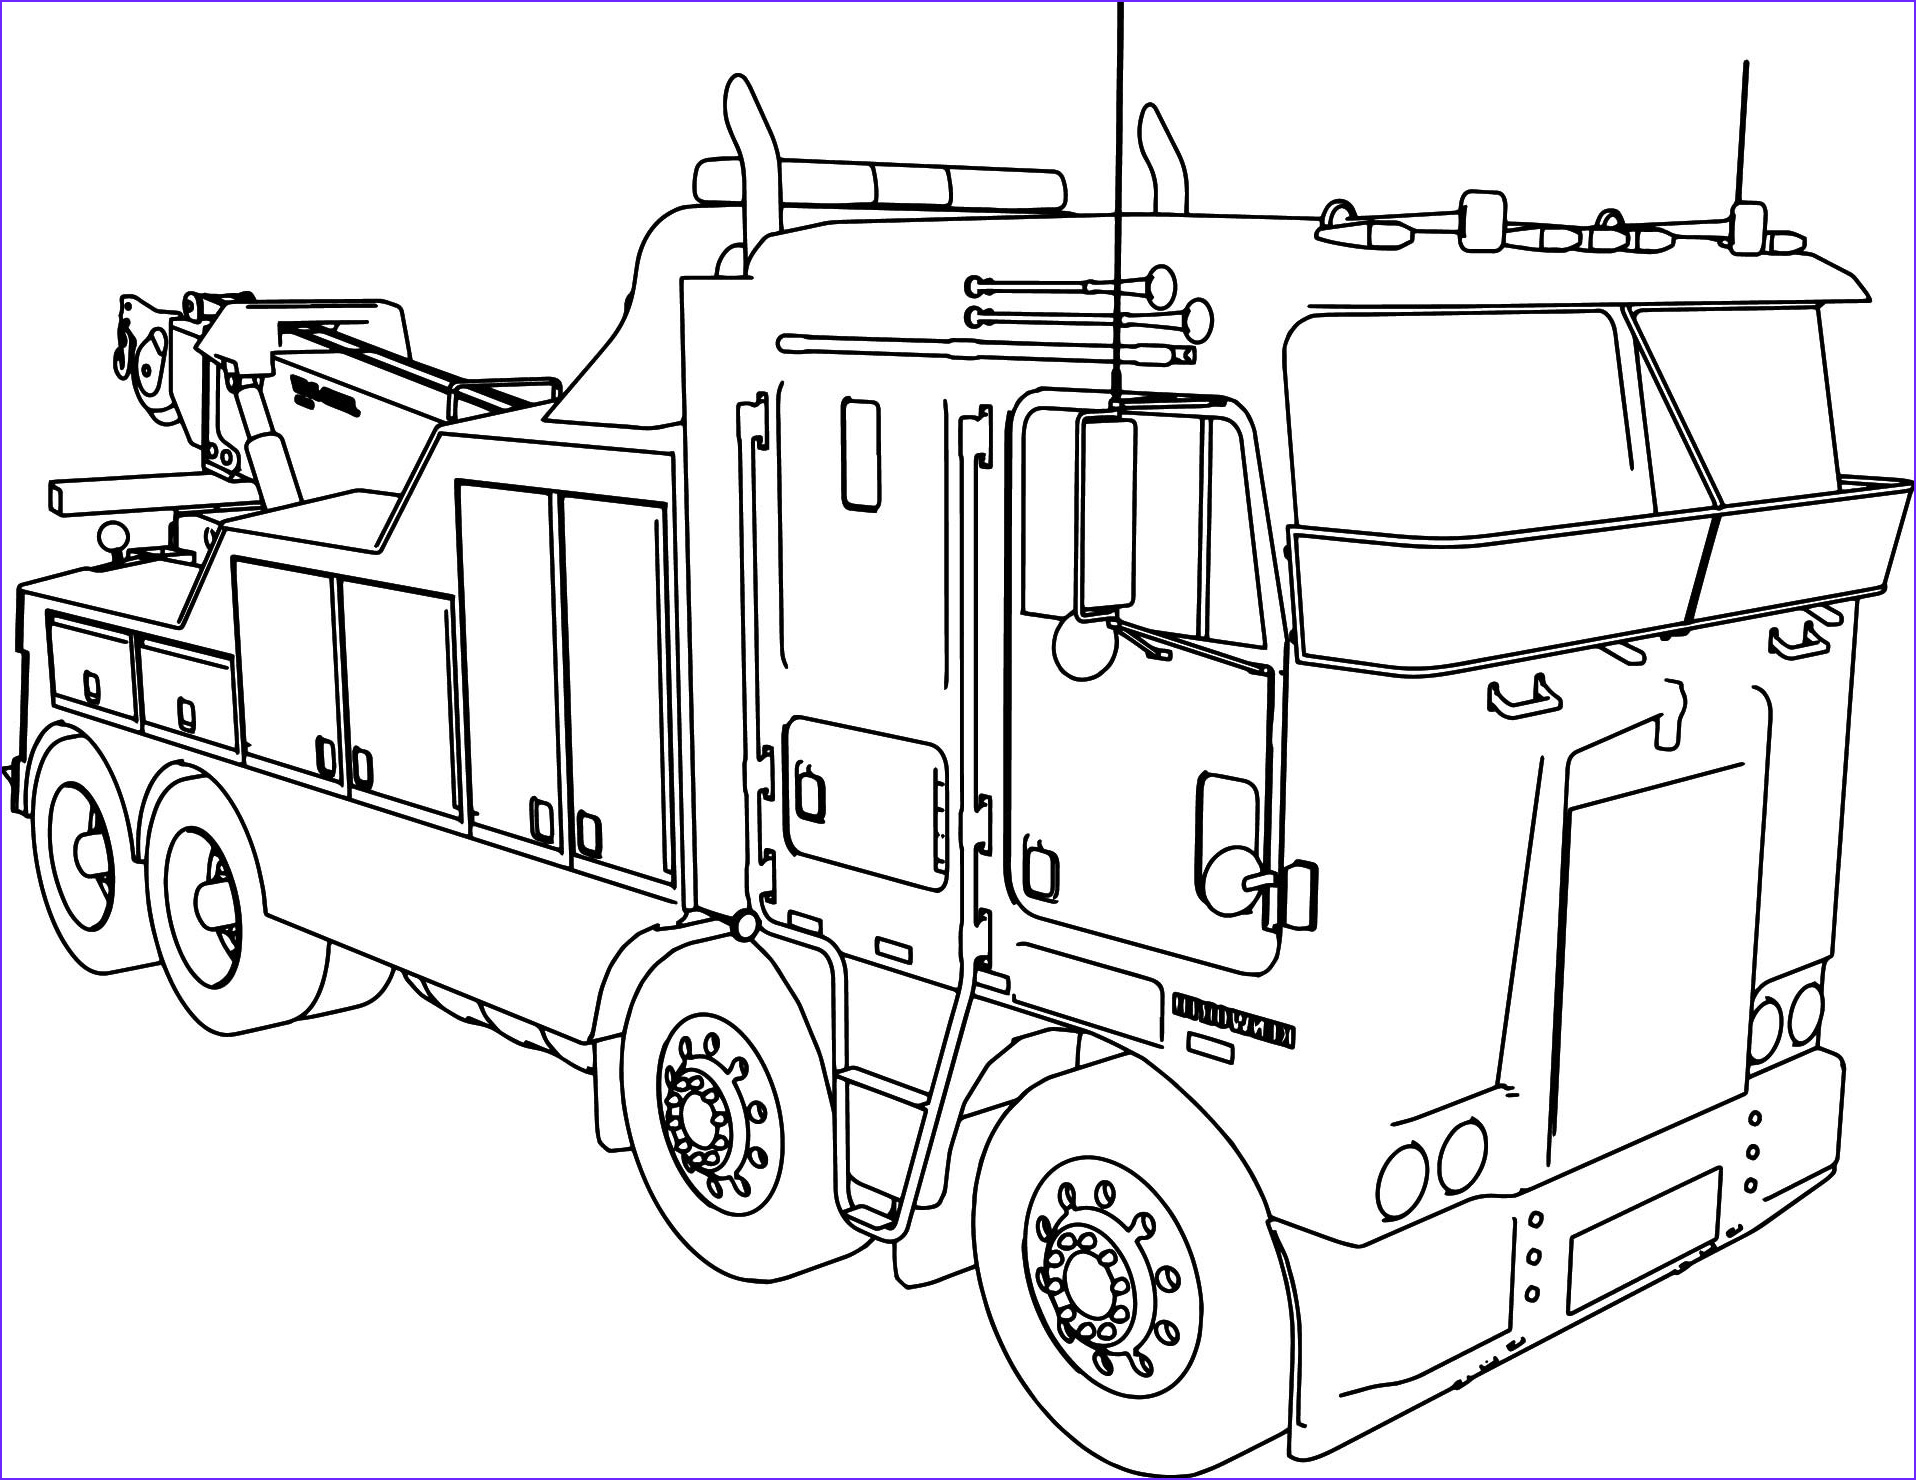 Semi Coloring Awesome Image Semi Truck Line Drawing at Getdrawings